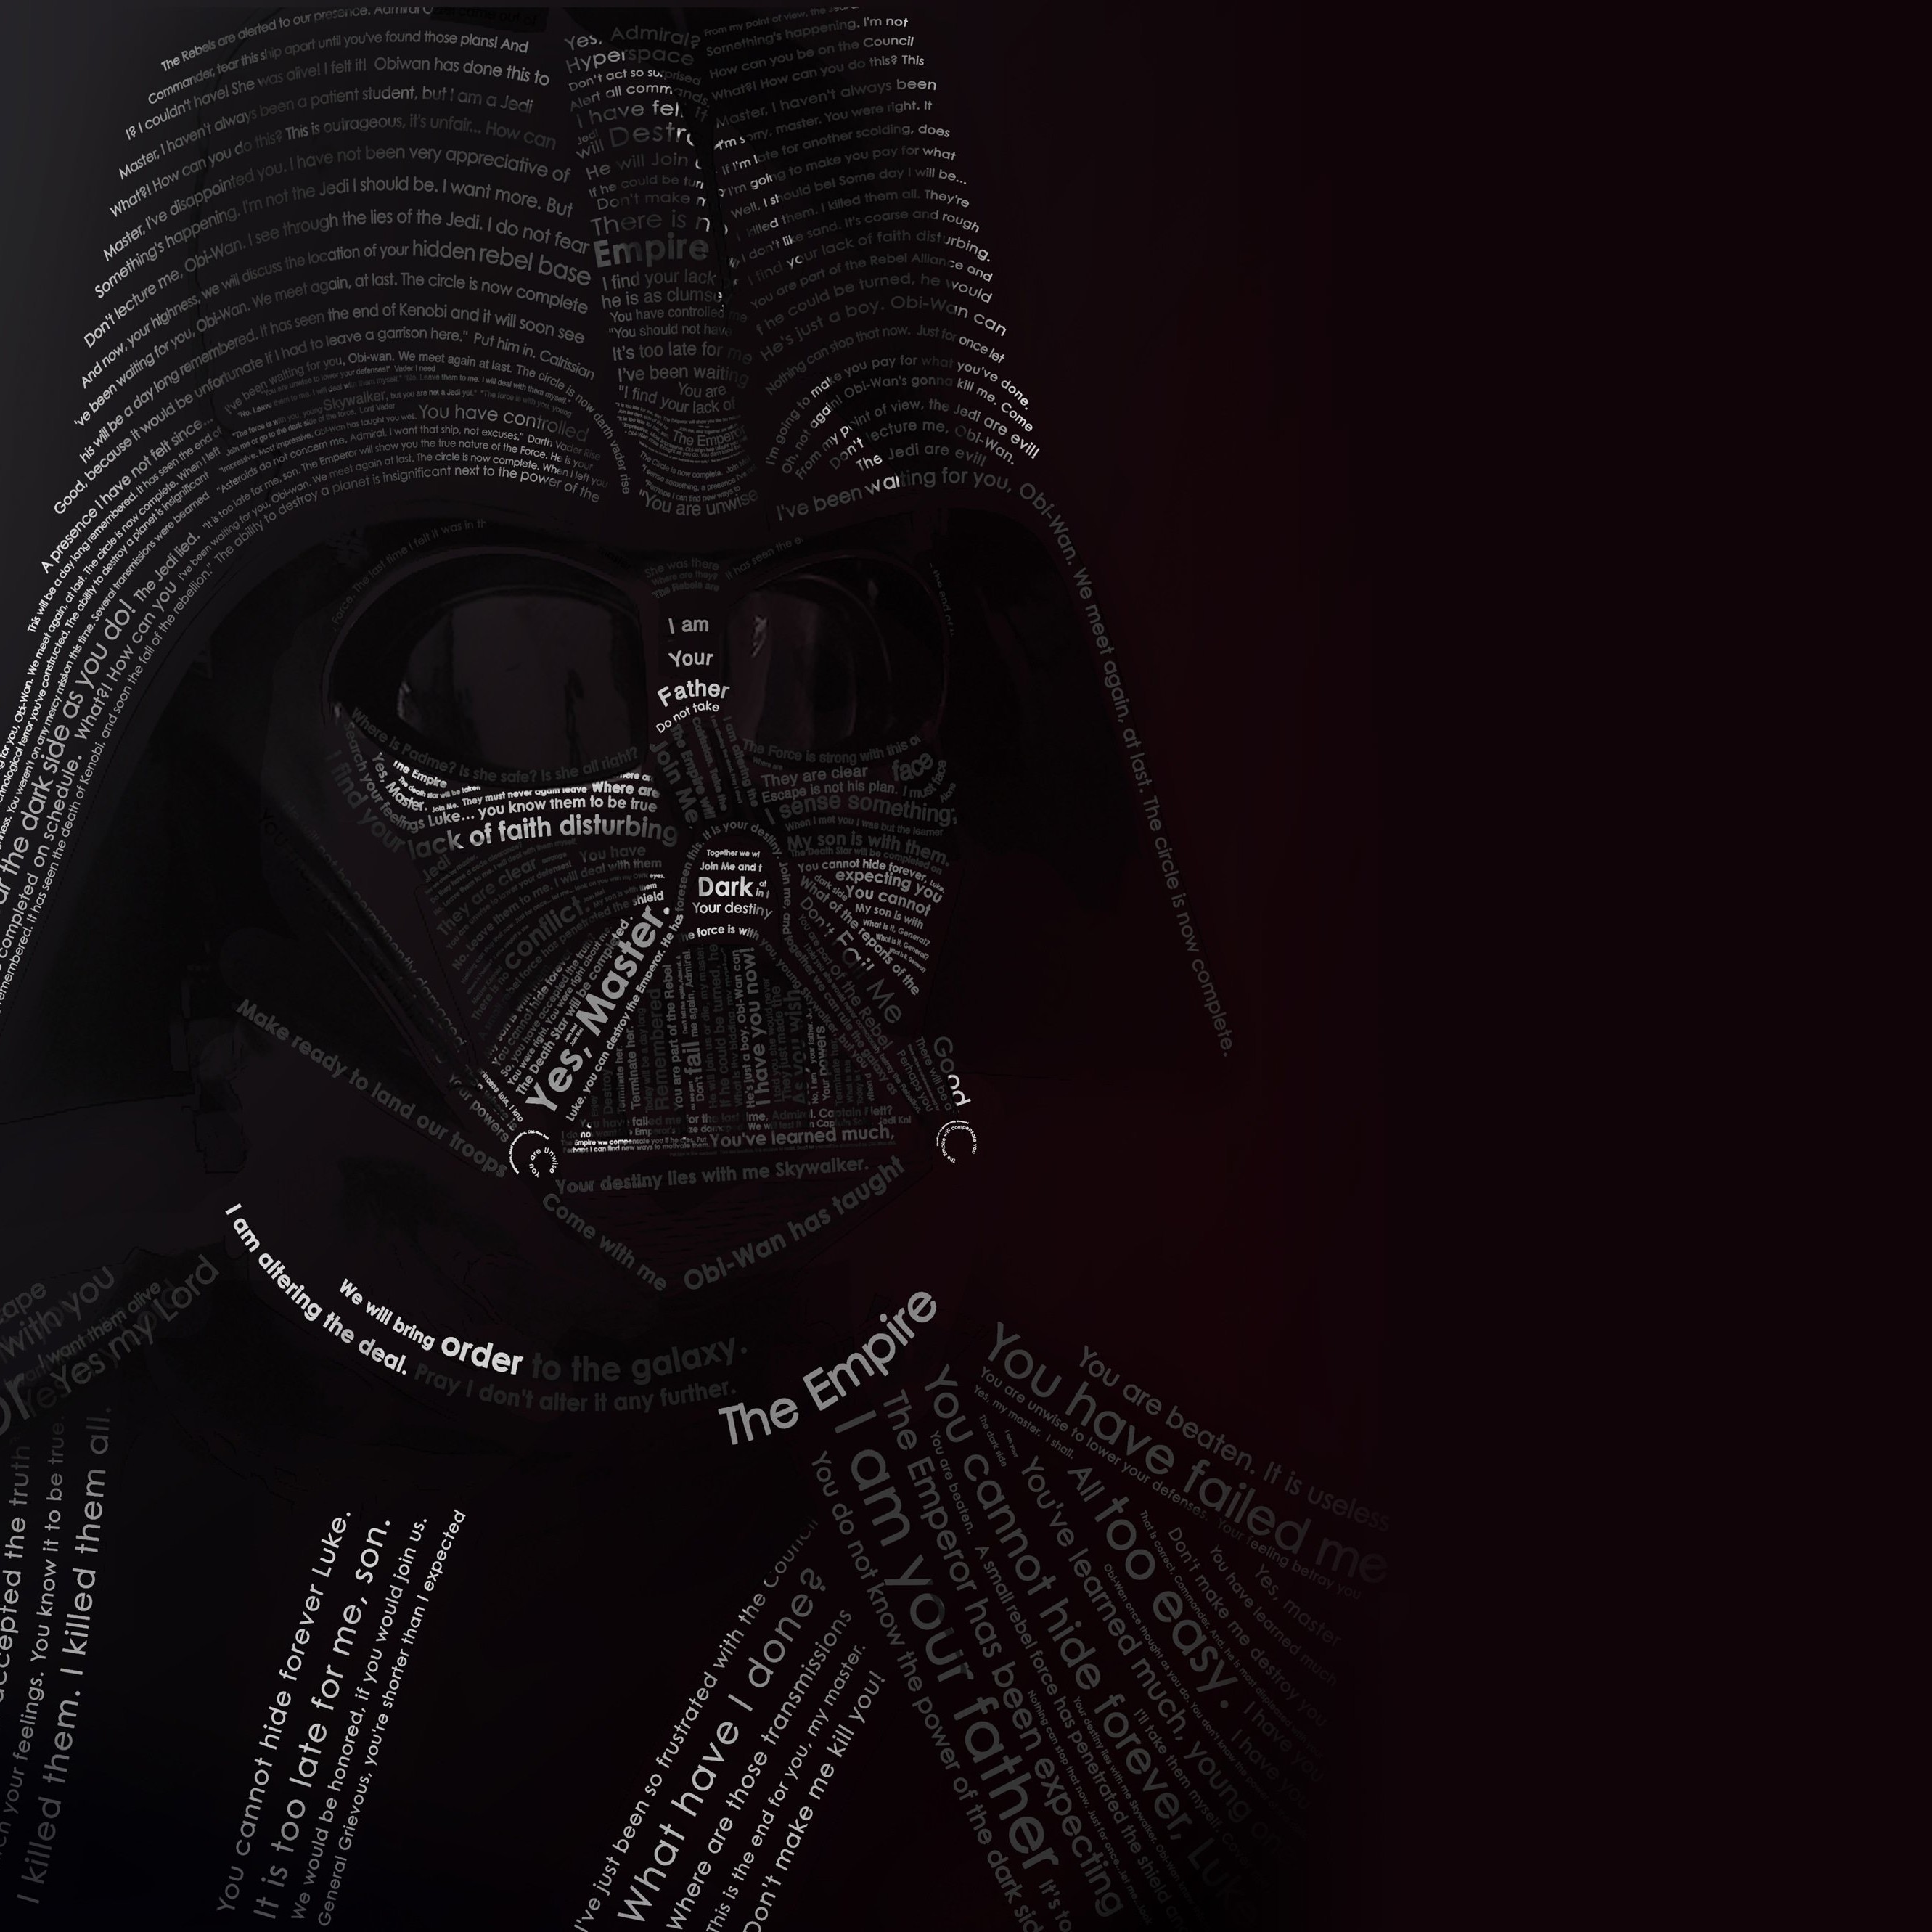 Darth Vader Typographic Portrait Wallpaper for Apple iPhone 6 Plus